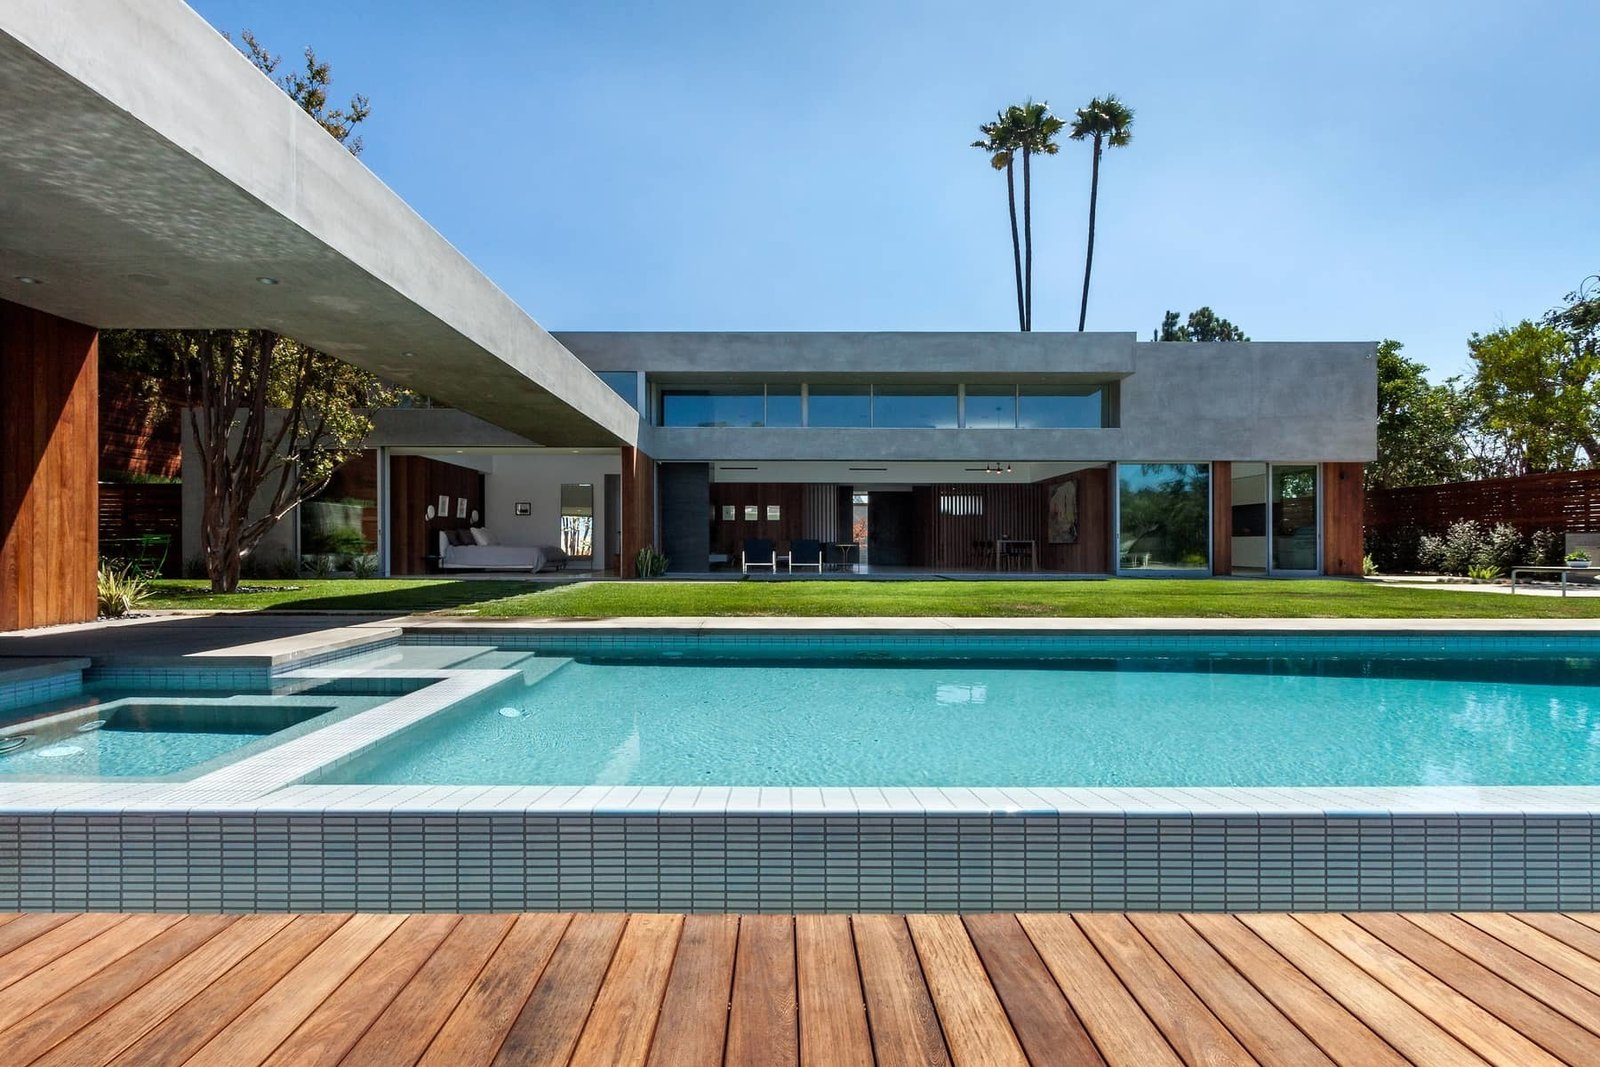 An extended wood terrace surrounds the pool, creating a courtyard setting.